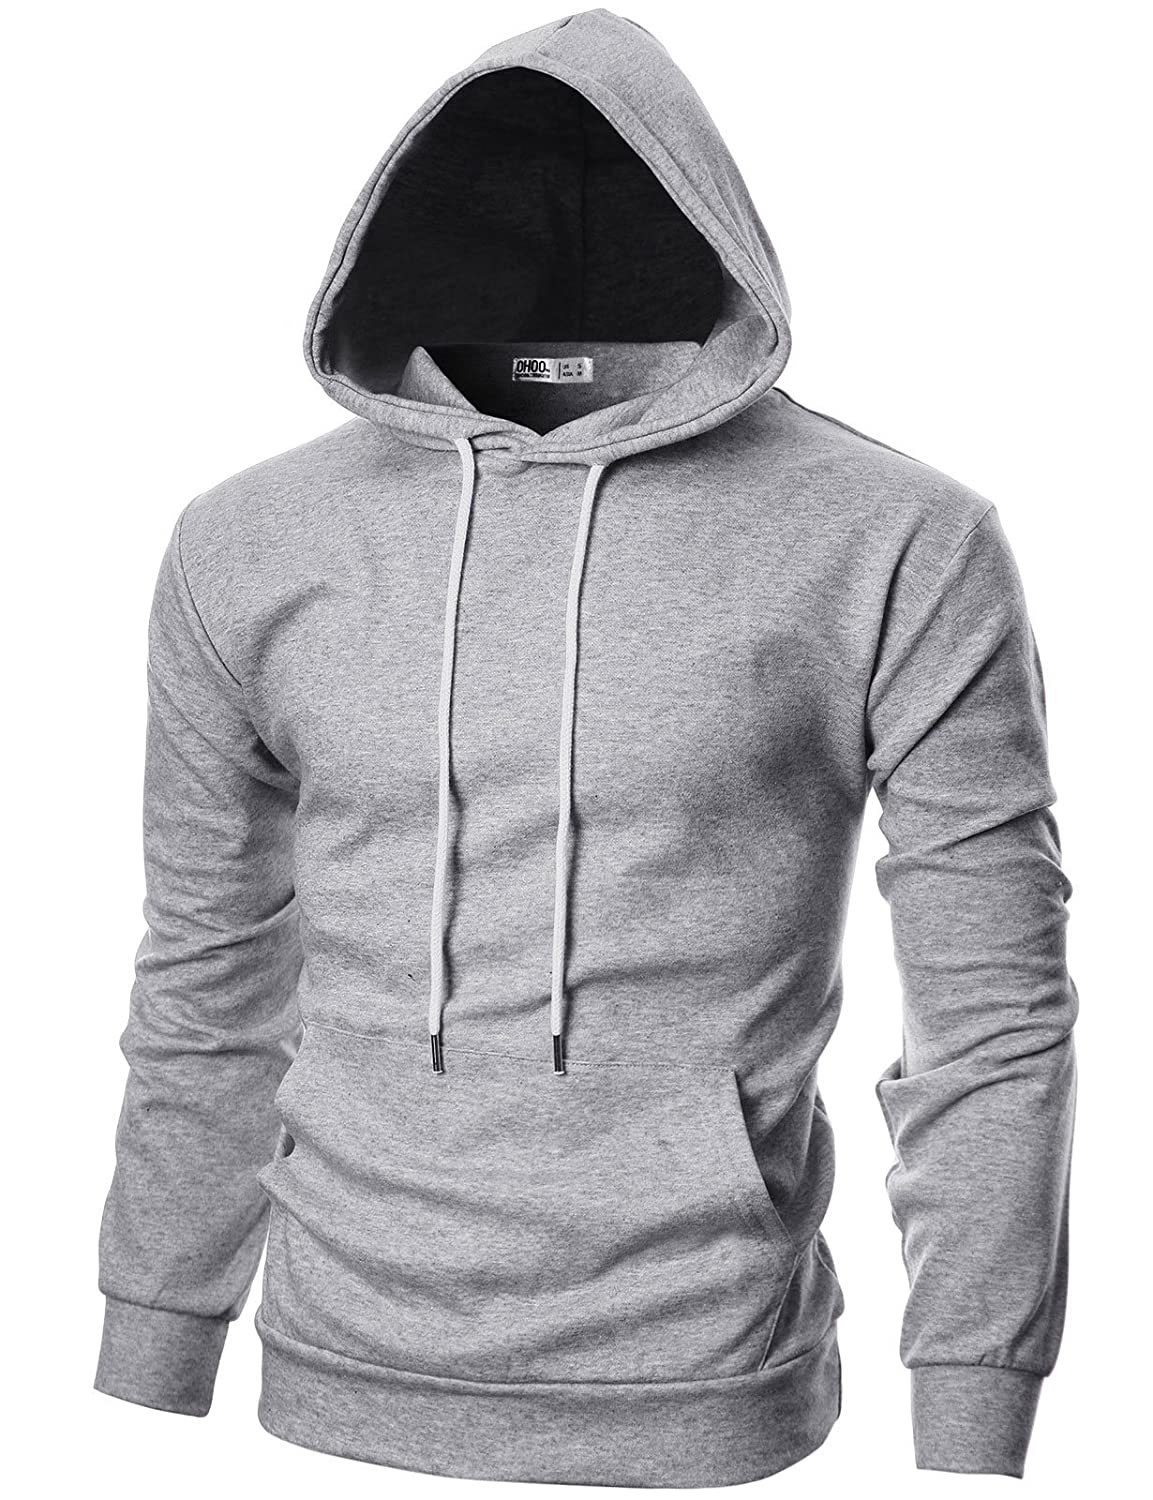 Ohoo Mens Slim Fit Long Sleeve Lightweight Hoodie with Kanga Pocket